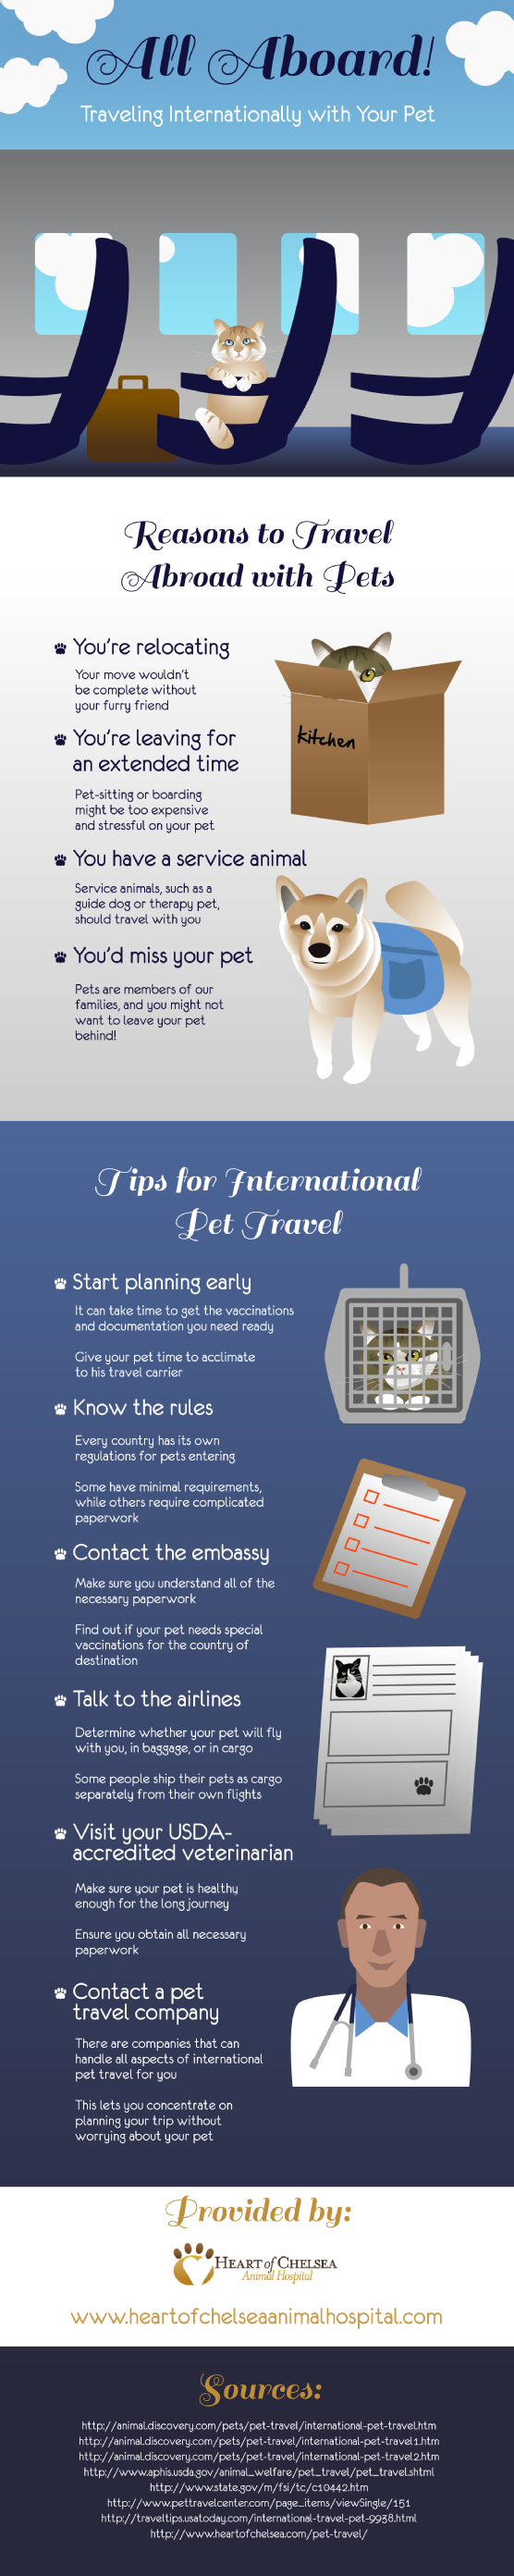 all-aboard-traveling-internationally-with-your-pet_51e6ee8bdb0e6